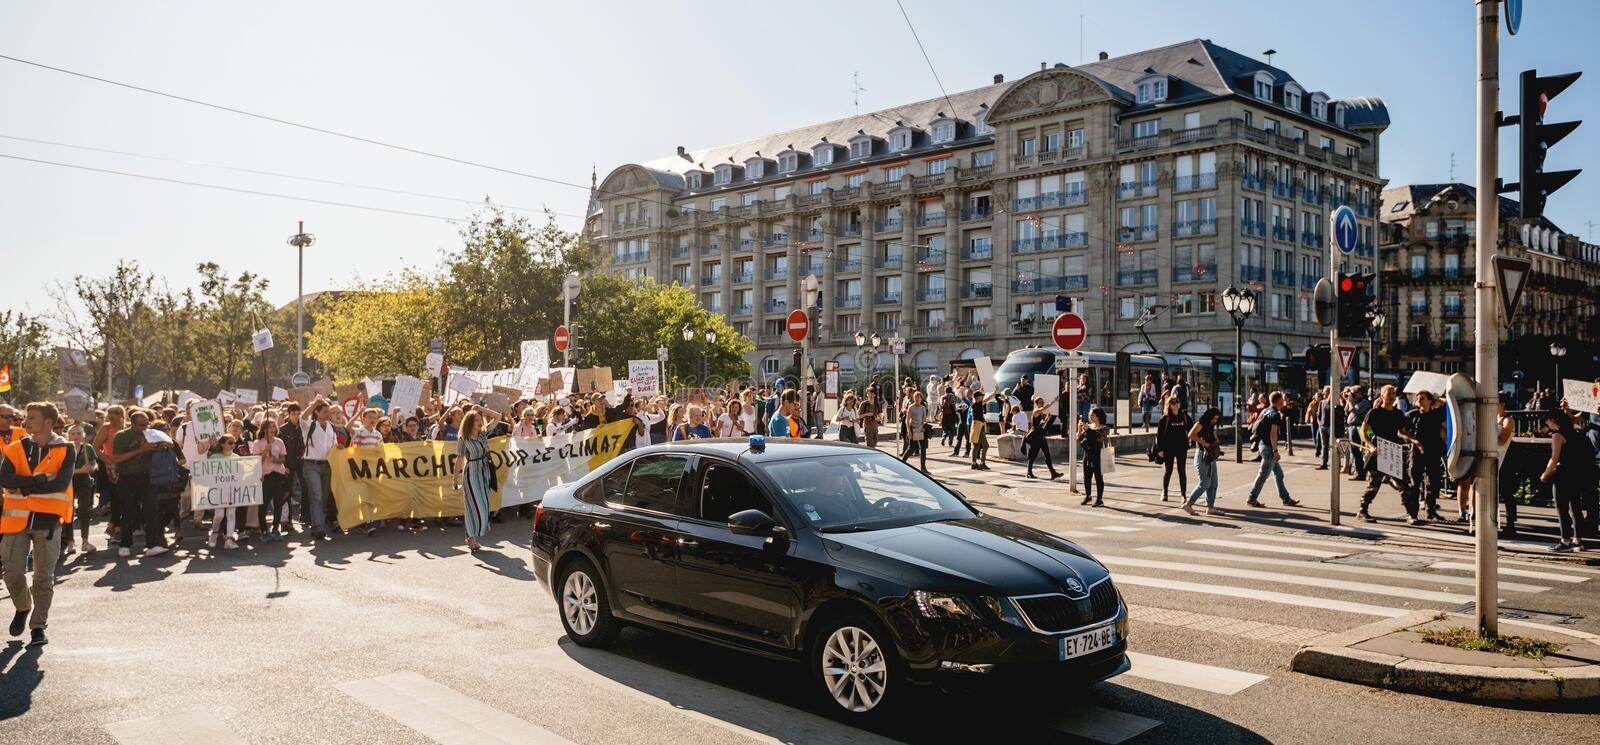 People rally for action on climate change police car surveillance royalty free stock photo